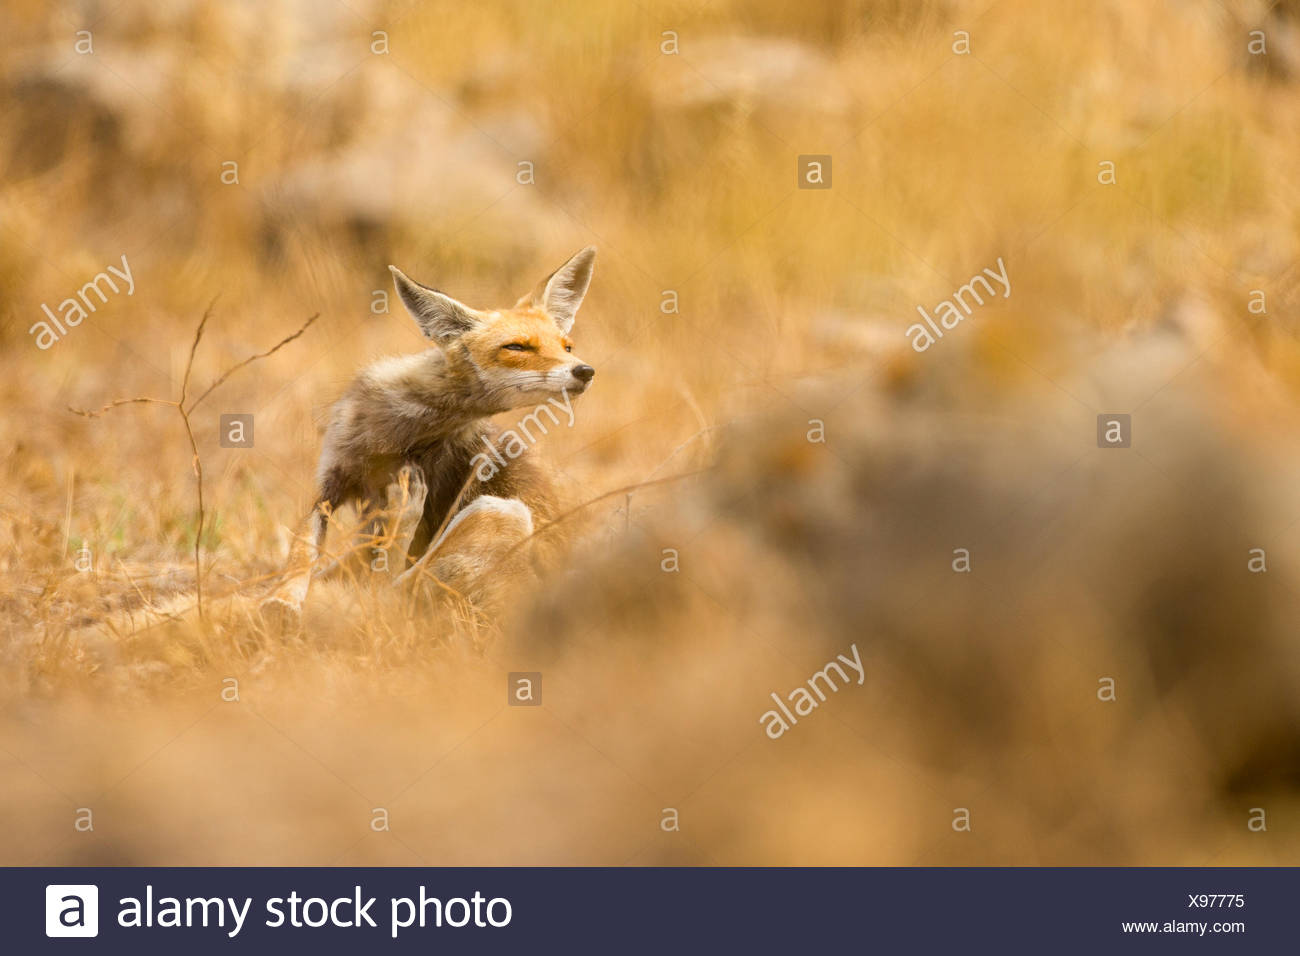 Red Fox (Vulpes vulpes). The Red Fox is the largest of the true foxes, as well as being the most geographically spread member of - Stock Image